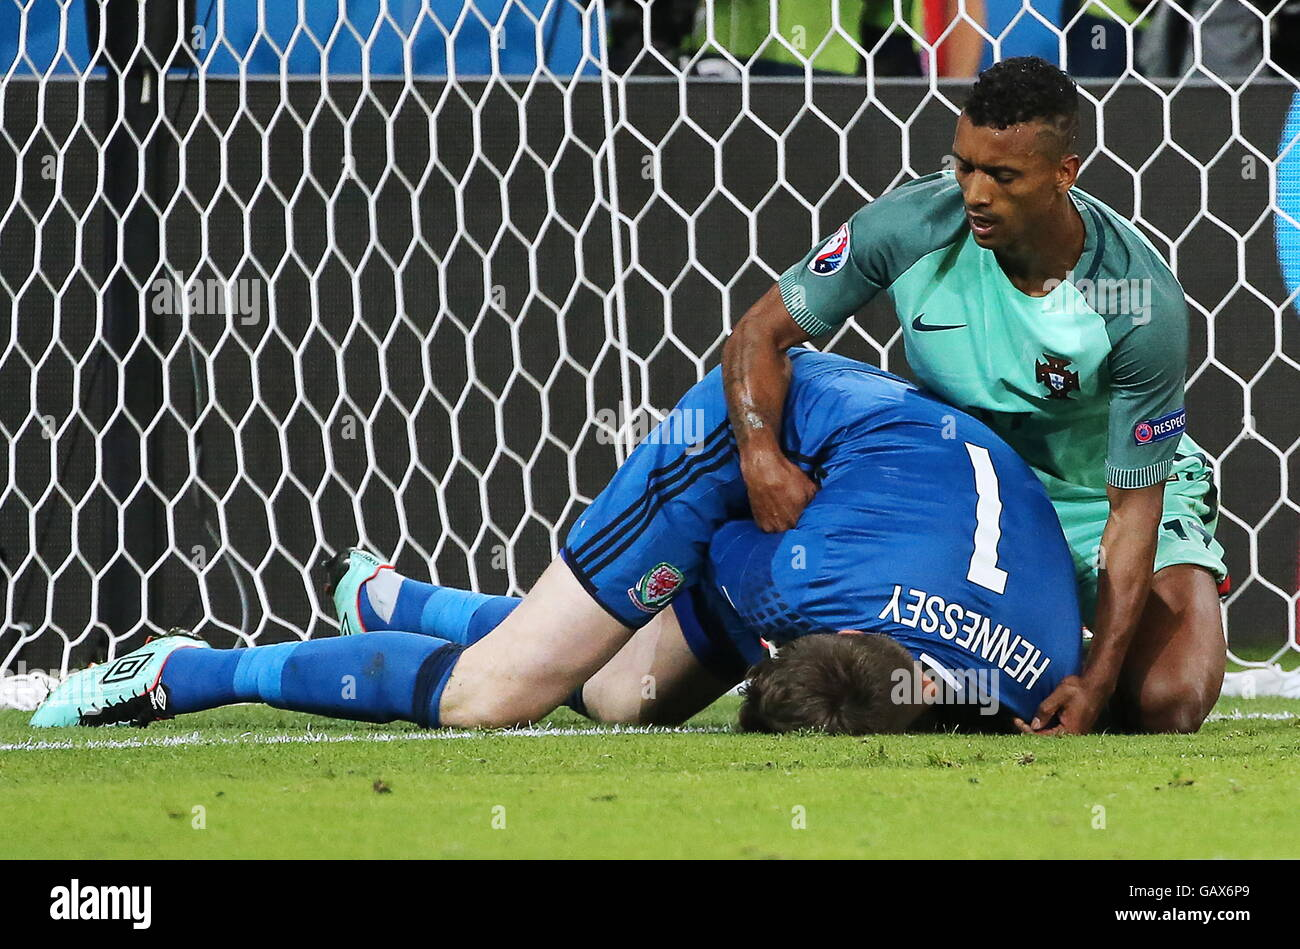 Lyon, France. 6th July, 2016. Wales' goalkeeper Wayne Hennessey (L) and Portugal's Nani in their 2016 UEFA European Stock Photo